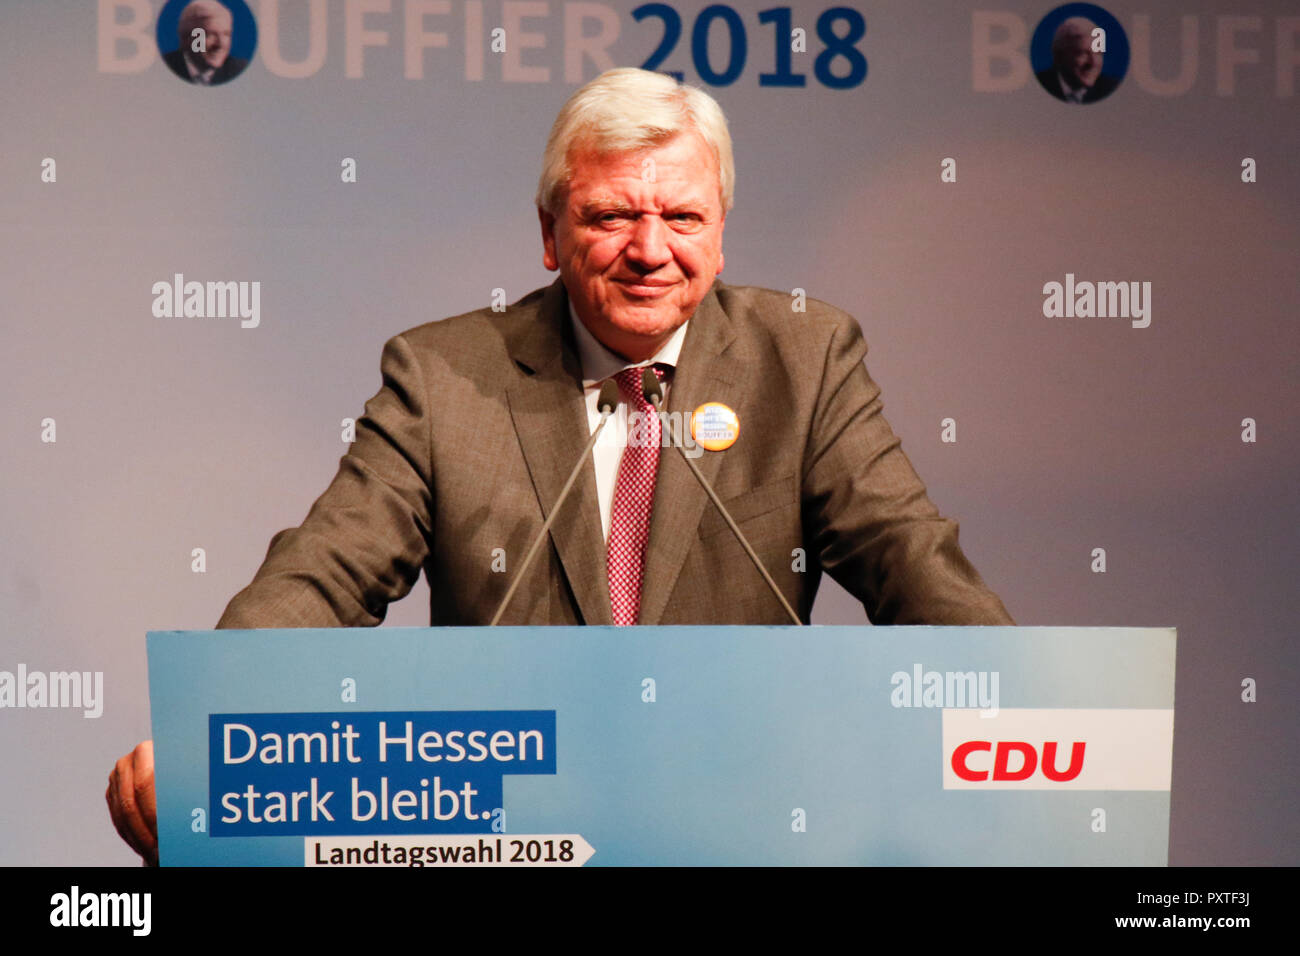 Dieburg, Germany. 23rd Oct, 2018. Volker Bouffier, Minister President of the German state of Hesse, speaks at the election rally. German Chancellor Angela Merkel attended a political rally of her CDU party in Dieburg ahead of the upcoming state election in the German state of Hesse. With less than a week to go to the election, the CDU is still leading the polls, but gas lost more than 10% compared to the last election. Credit: Michael Debets/Pacific Press/Alamy Live News - Stock Image